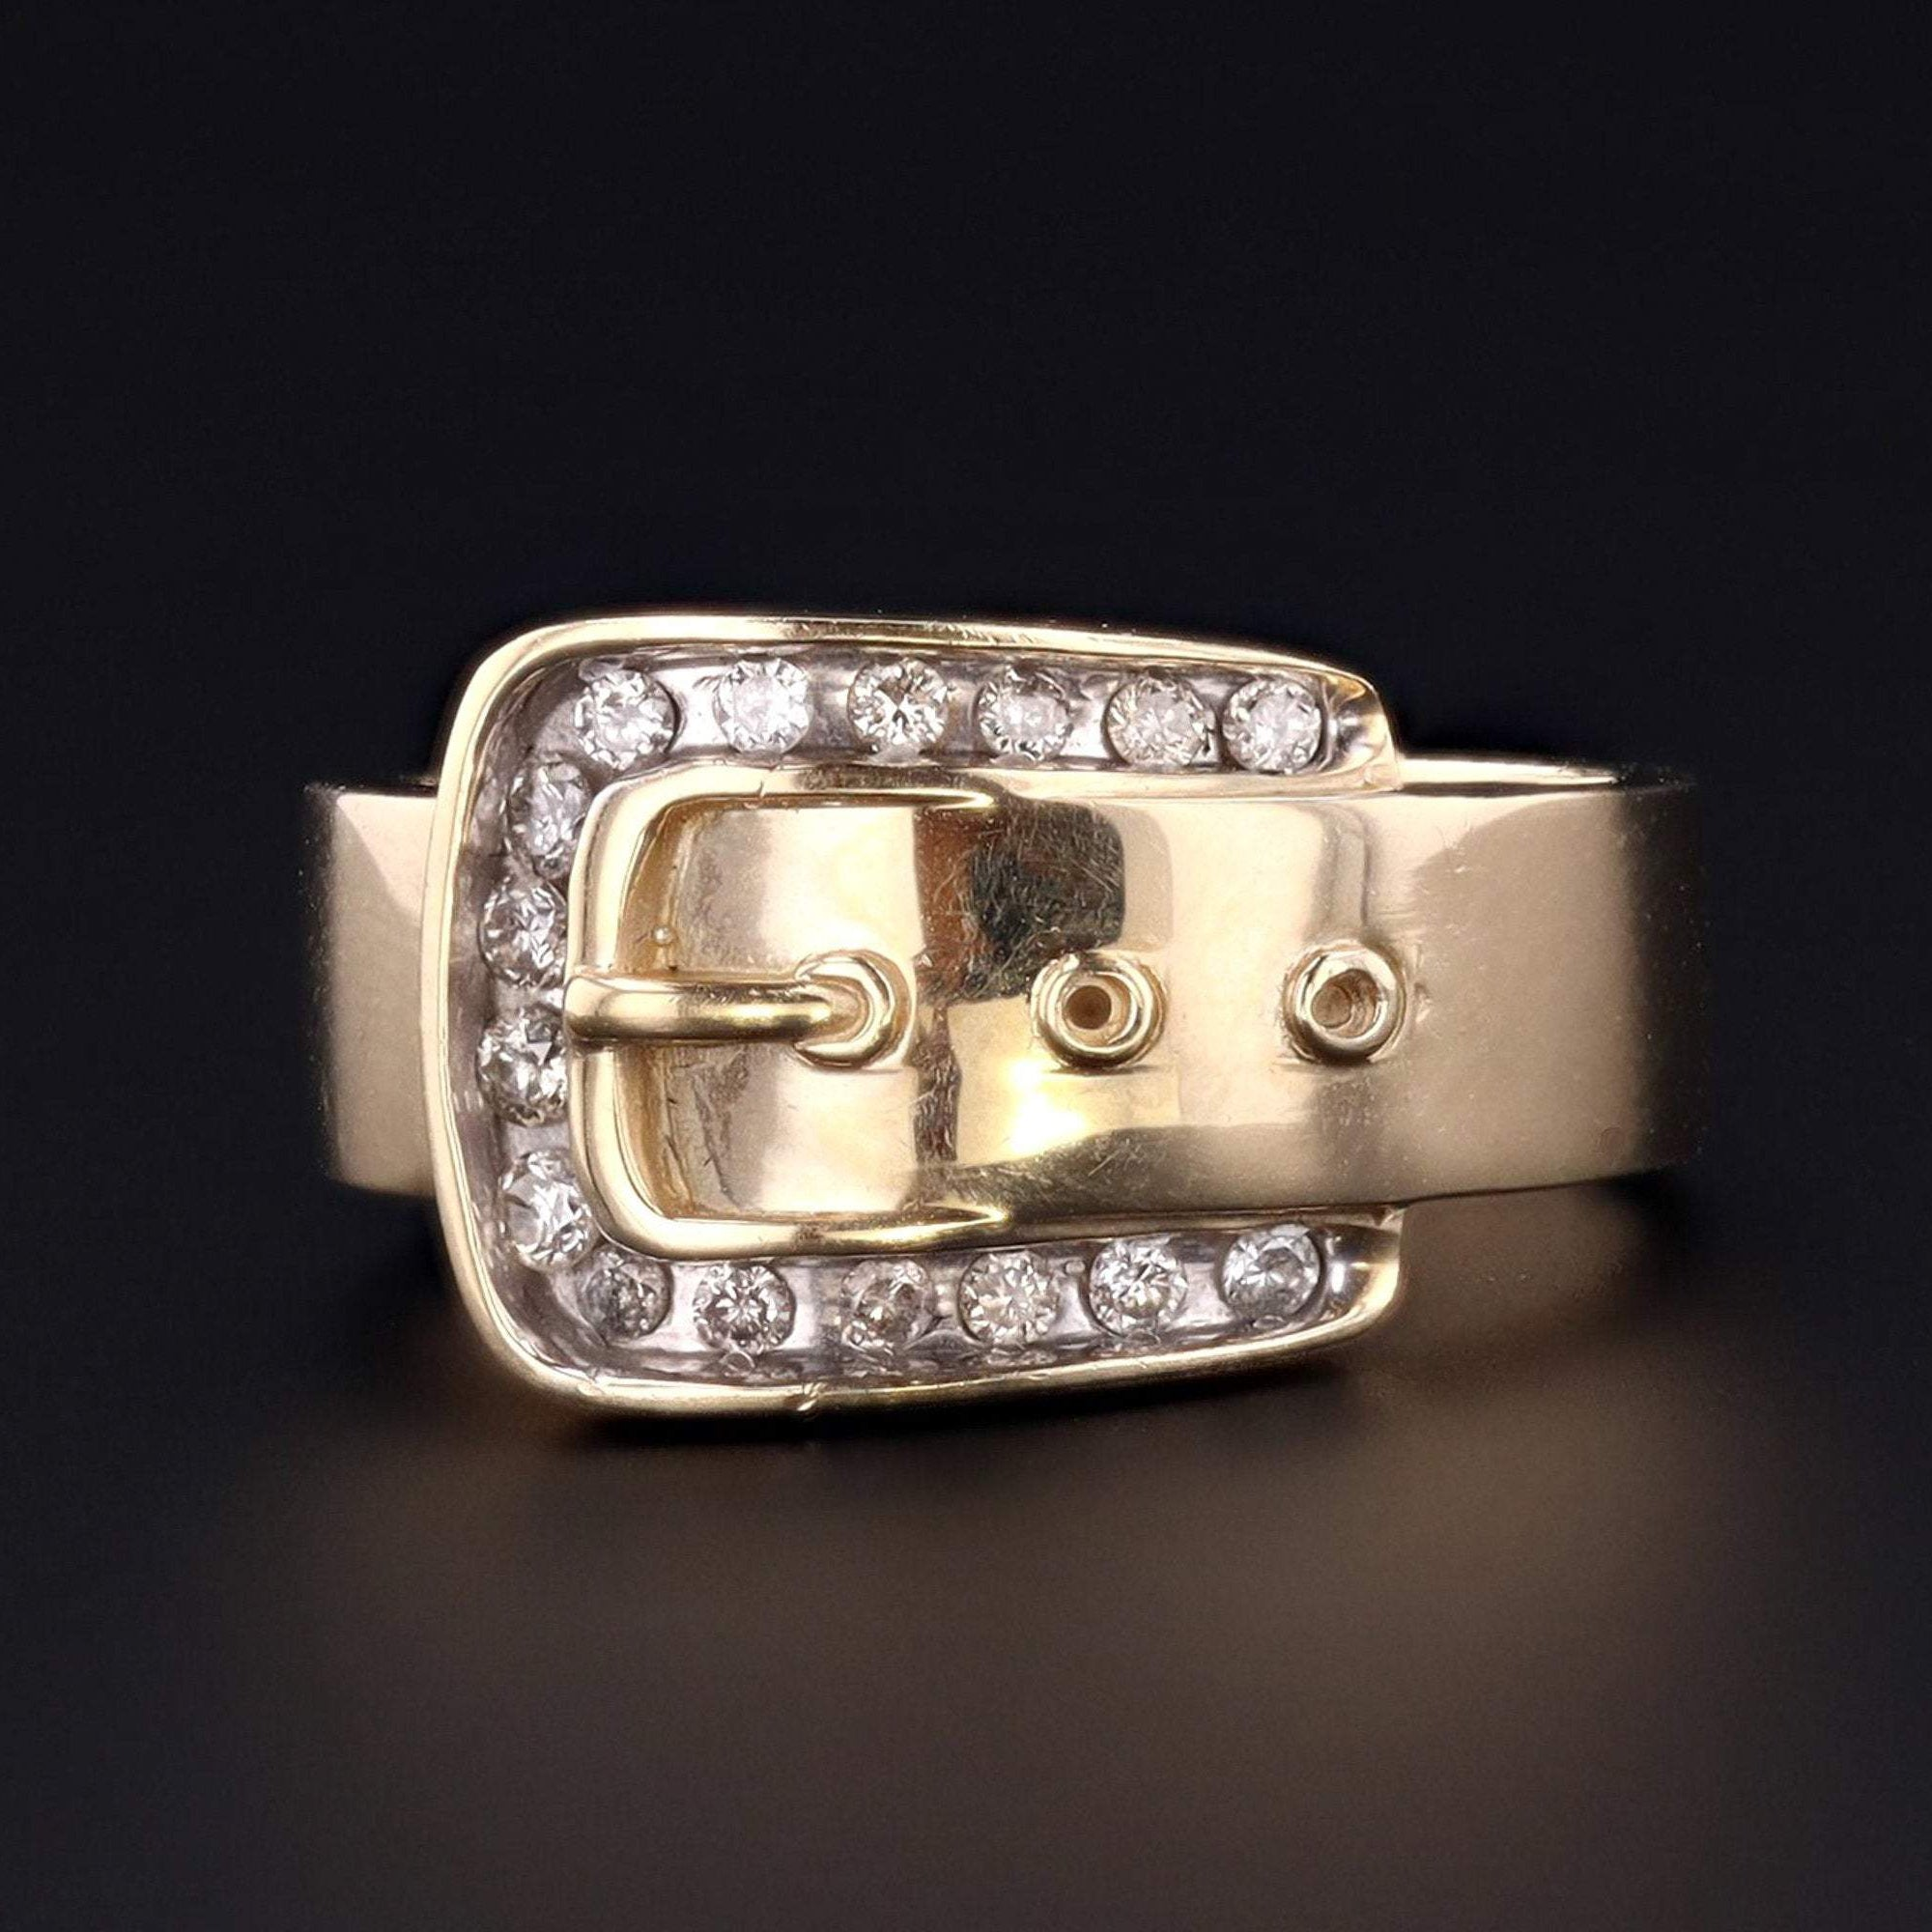 Vintage Buckle Ring | 10k Gold Buckle Ring | 10k Gold & Diamond Buckle Ring